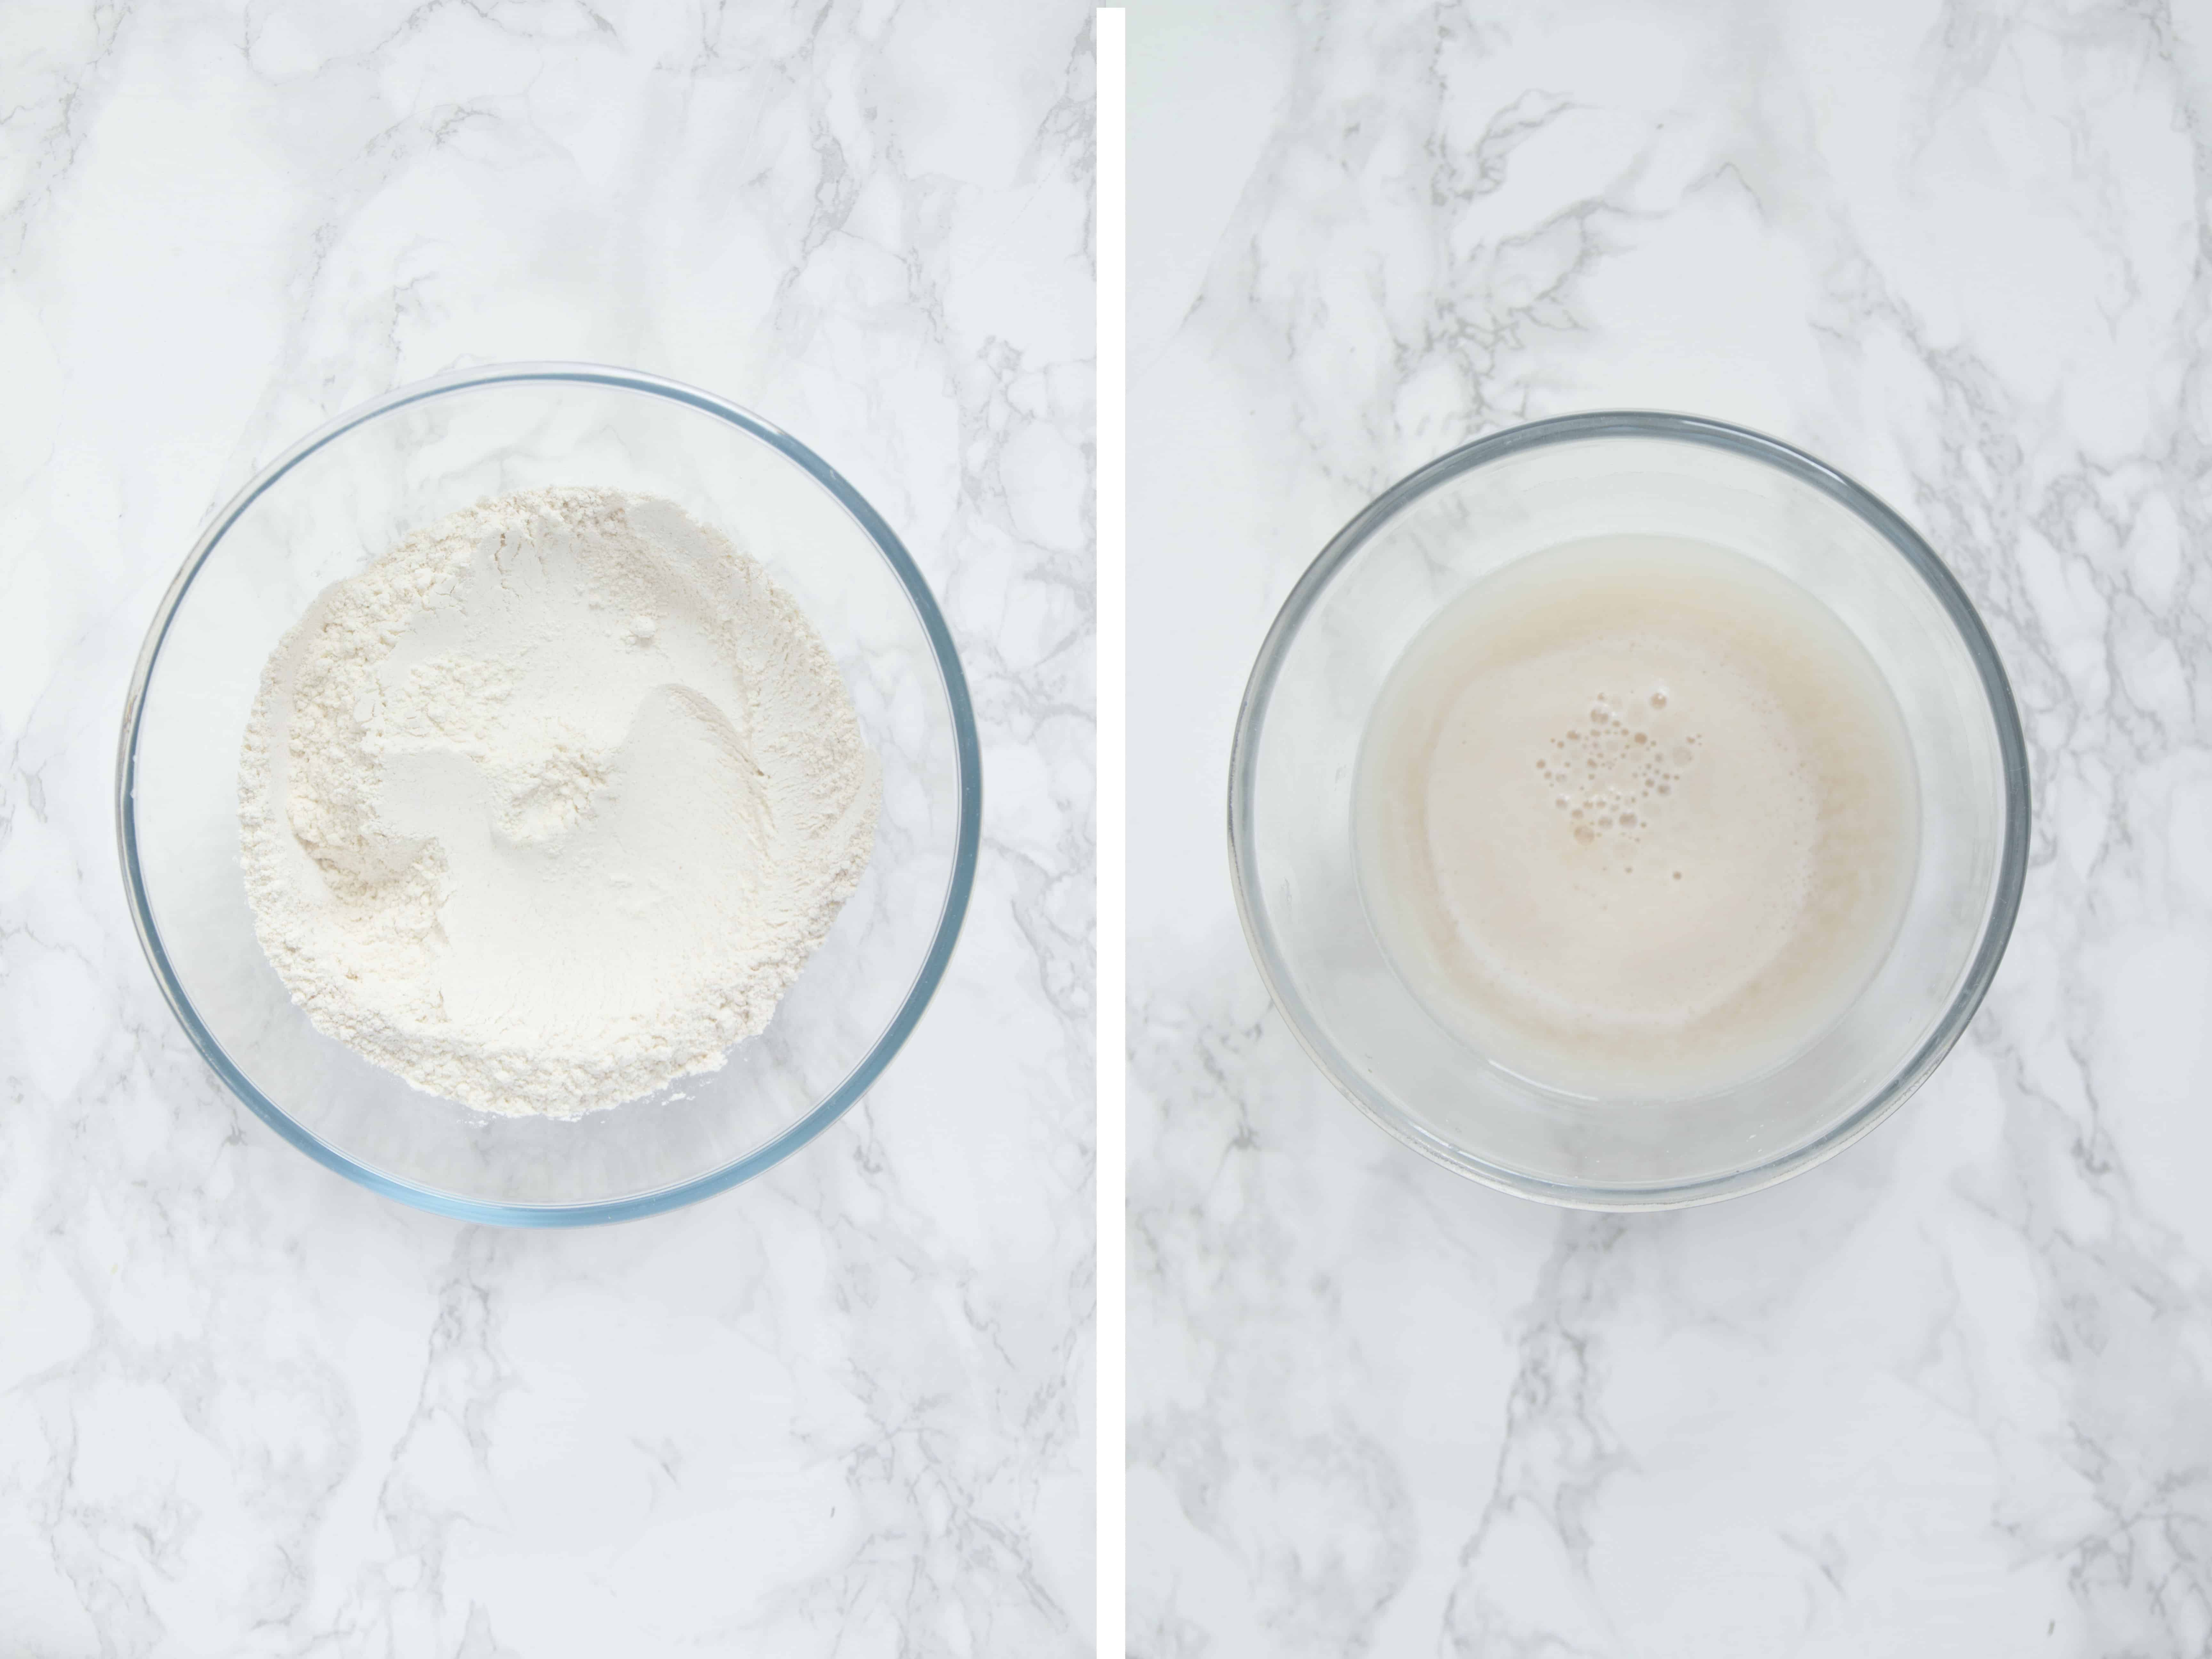 Flour in a glass bowl and water, yeast and sugar dissolved in a second glass bowl.